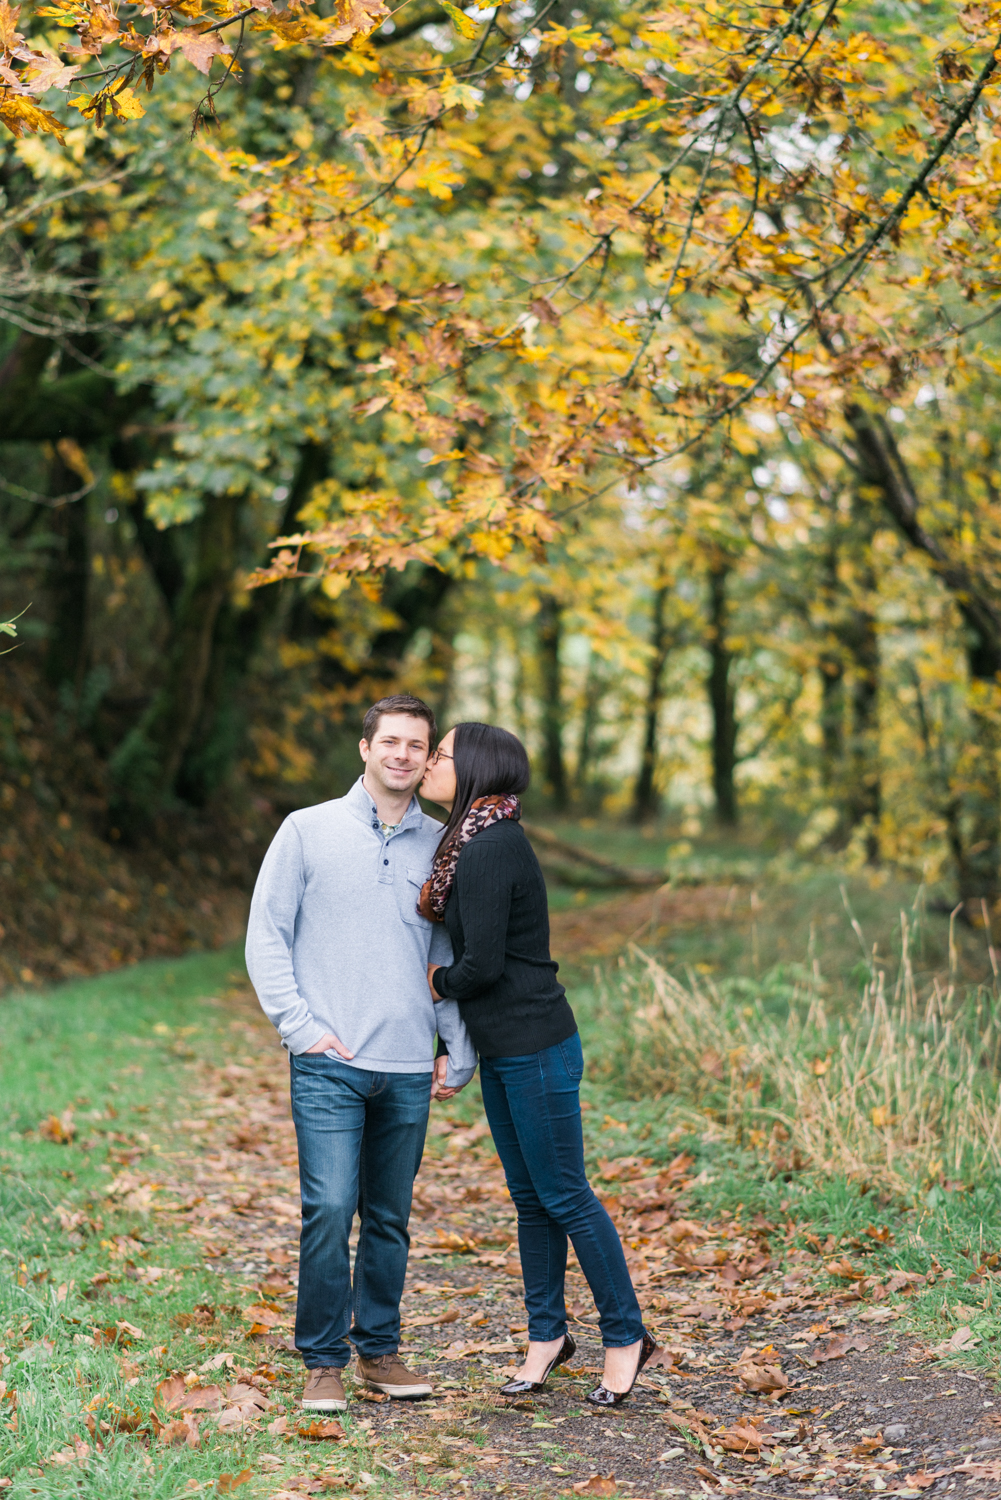 portland-engagement-columbia-river-gorge-latourell-waterfall-autumn-fall-crown-point-shelley-marie-photo-08.jpg